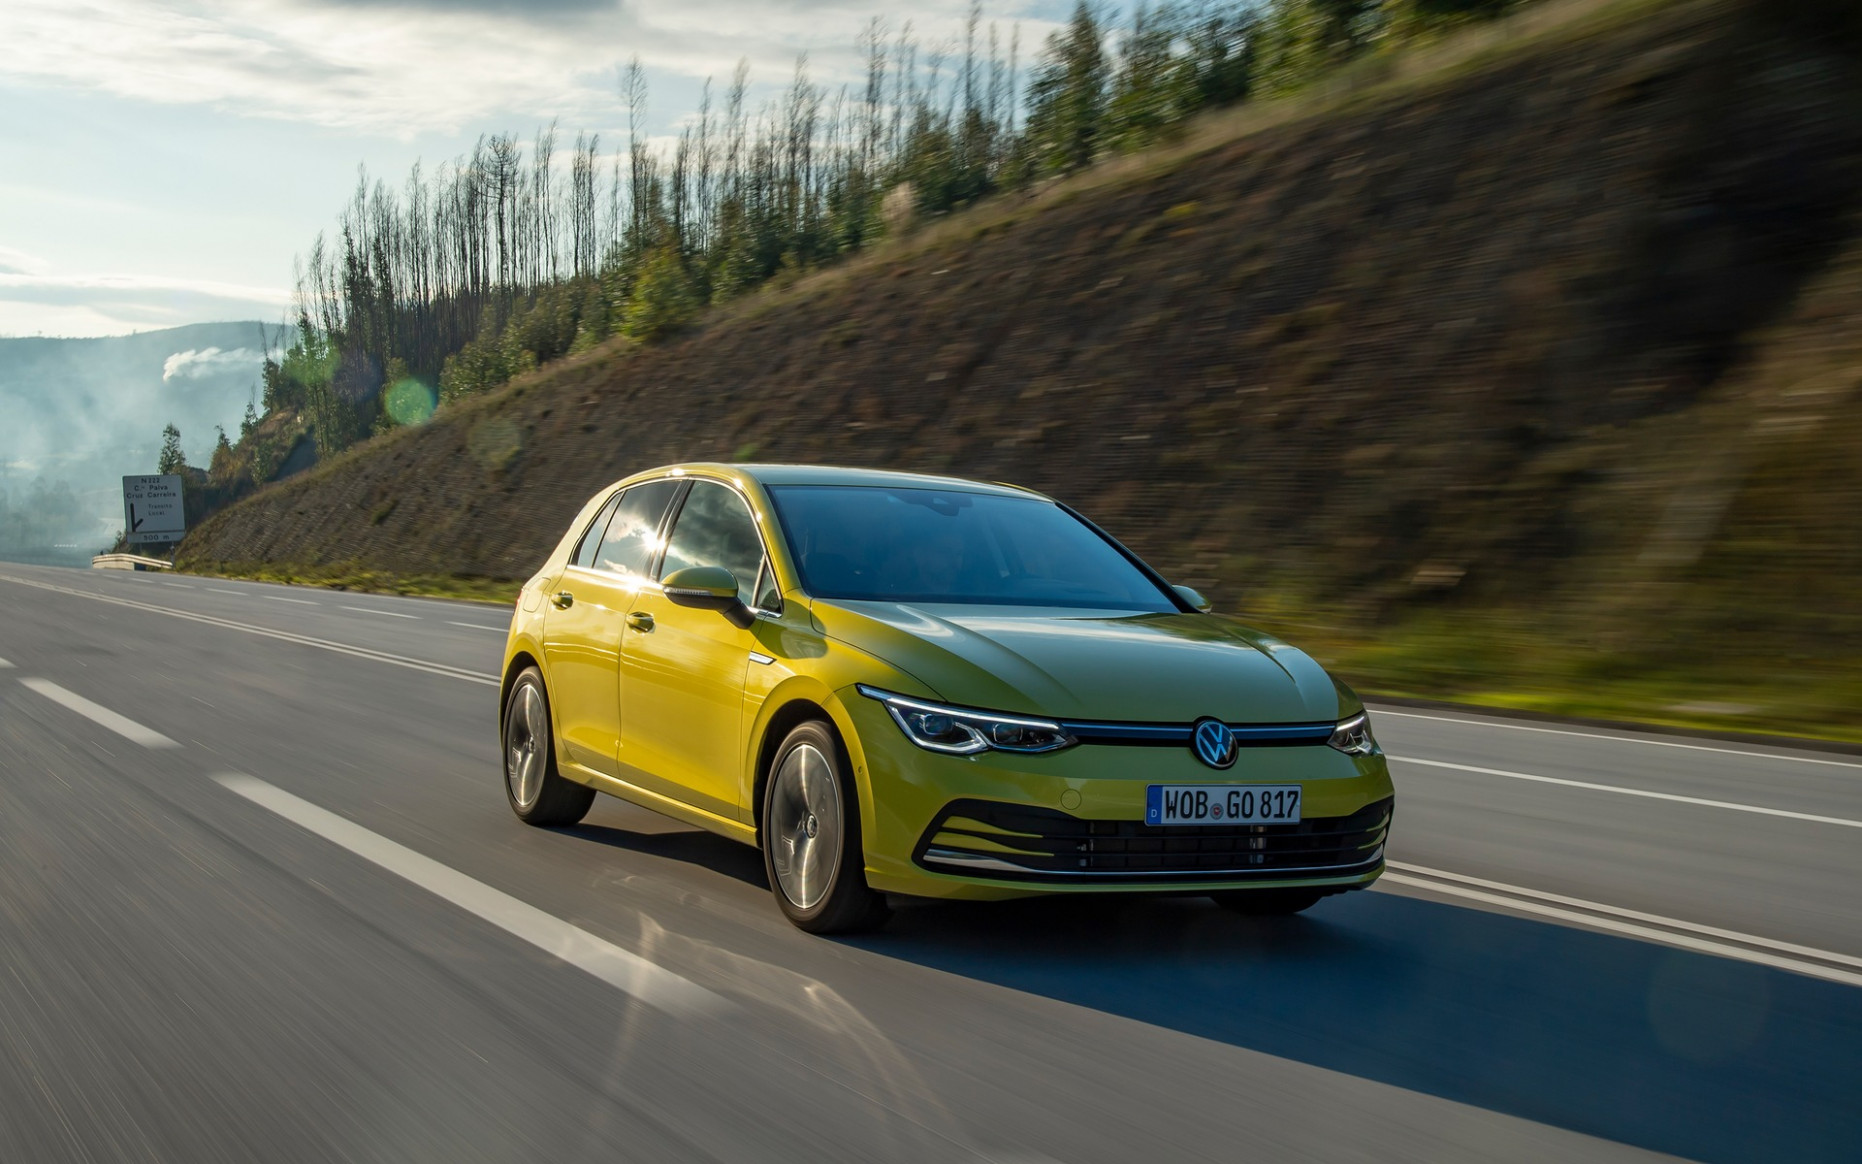 Redesign and Concept Volkswagen E-Golf 2022